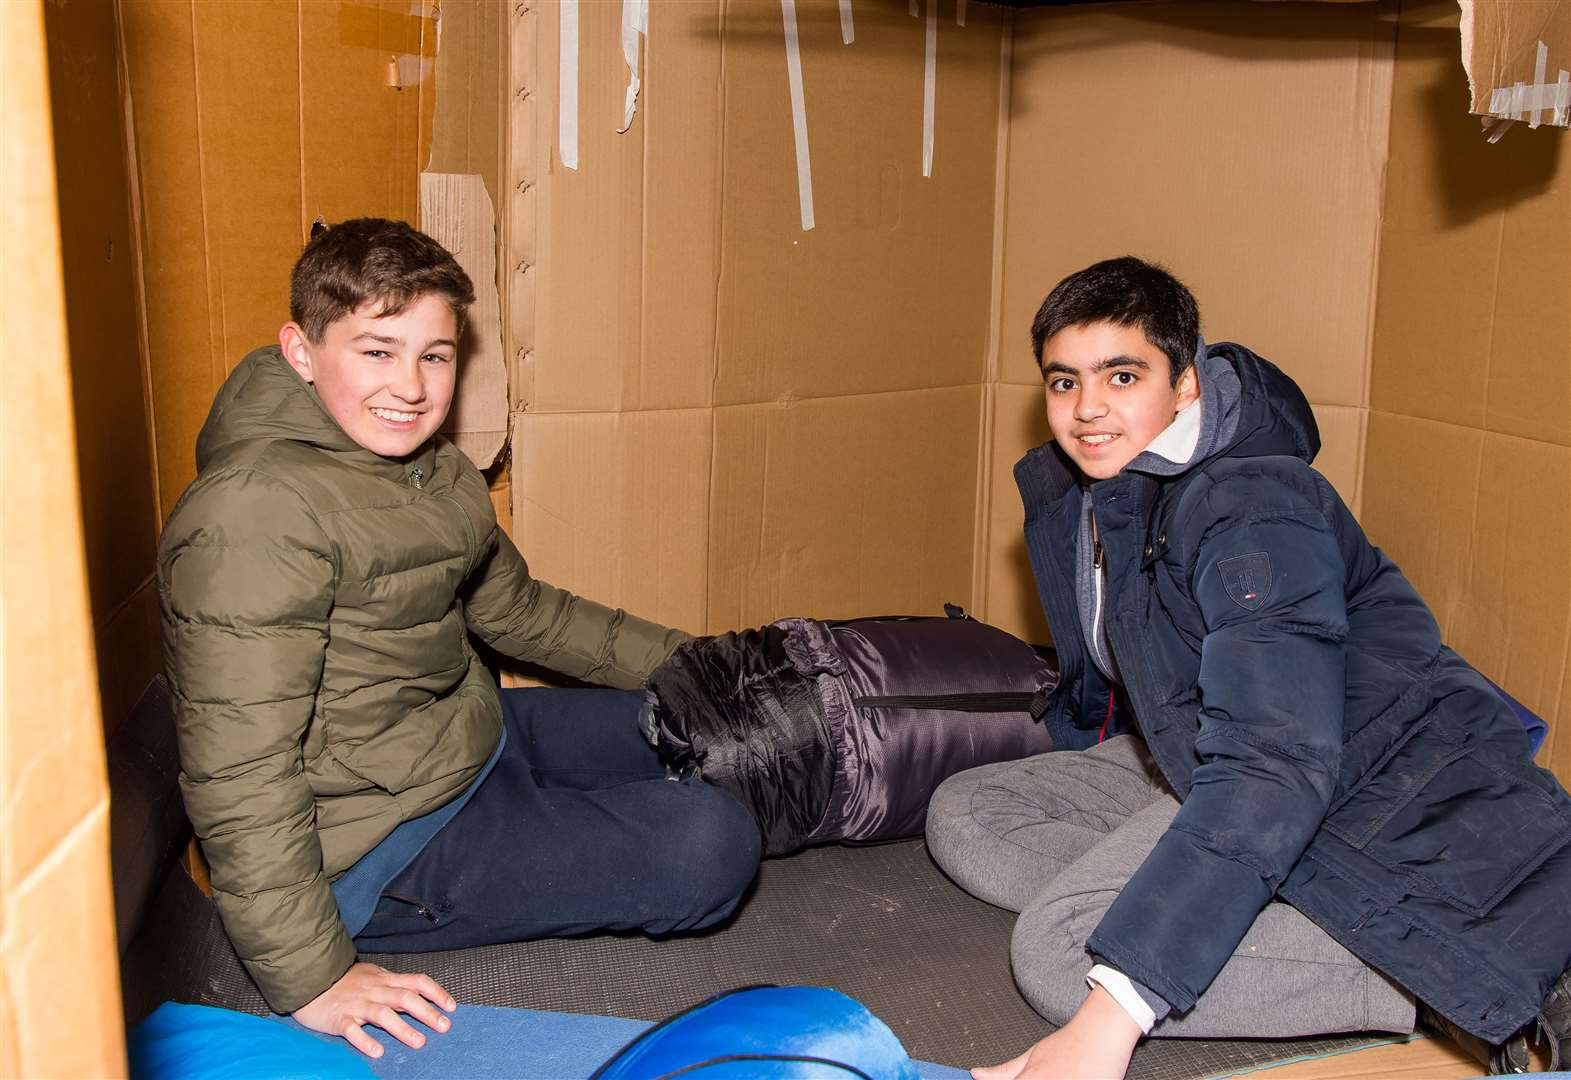 School's sleepout raises £13k for homeless